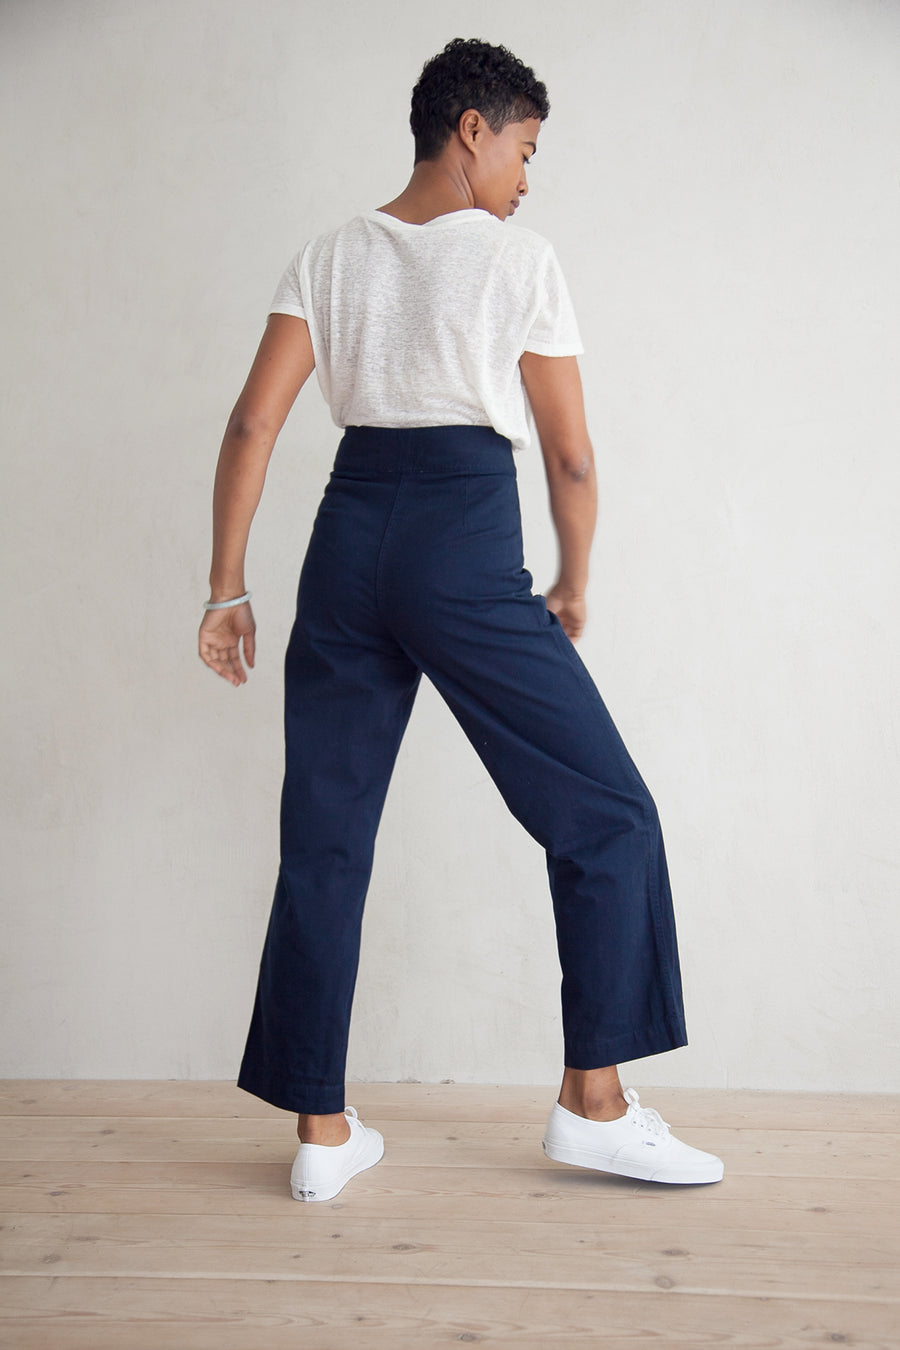 COTTON FLY FRONT PANT - NAVY